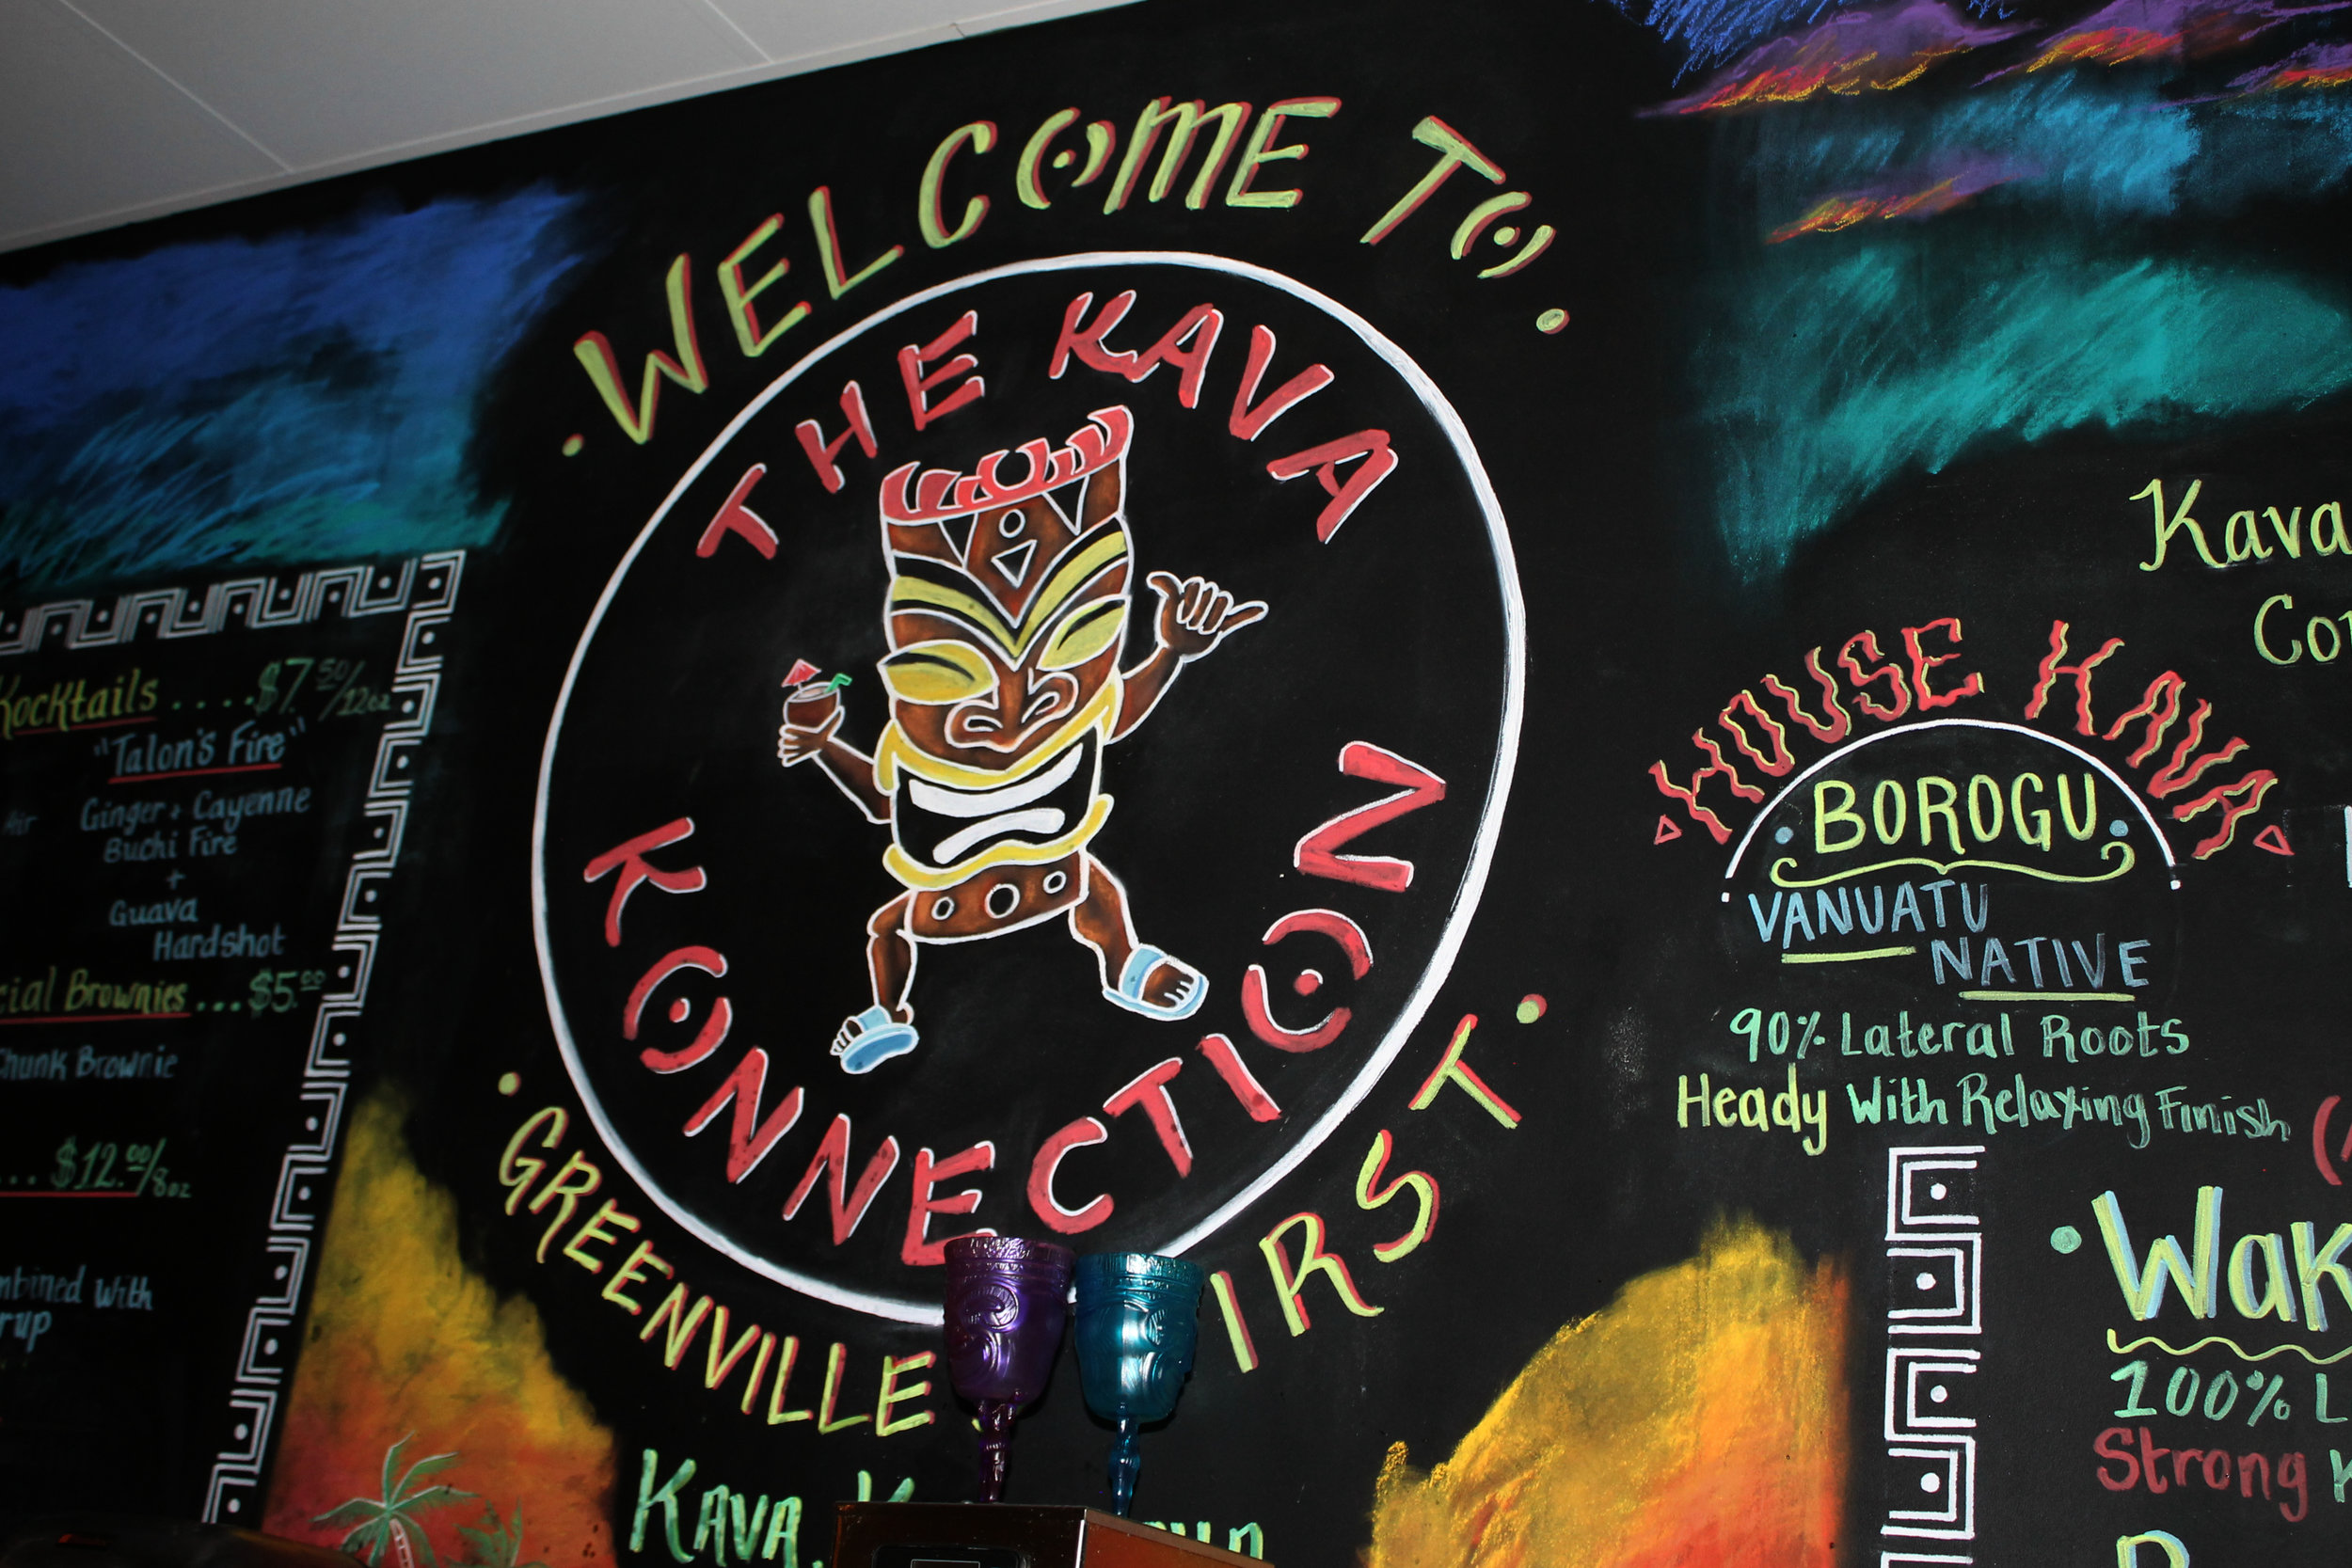 The Kava Konnection , South Carolina's only Kava Bar is open until midnight on Tuesday through Thursday and till 12 a.m. and  2 a.m. on Friday's and Saturdays. Students from North Greenville University travel to Kava for their favorite drinks.